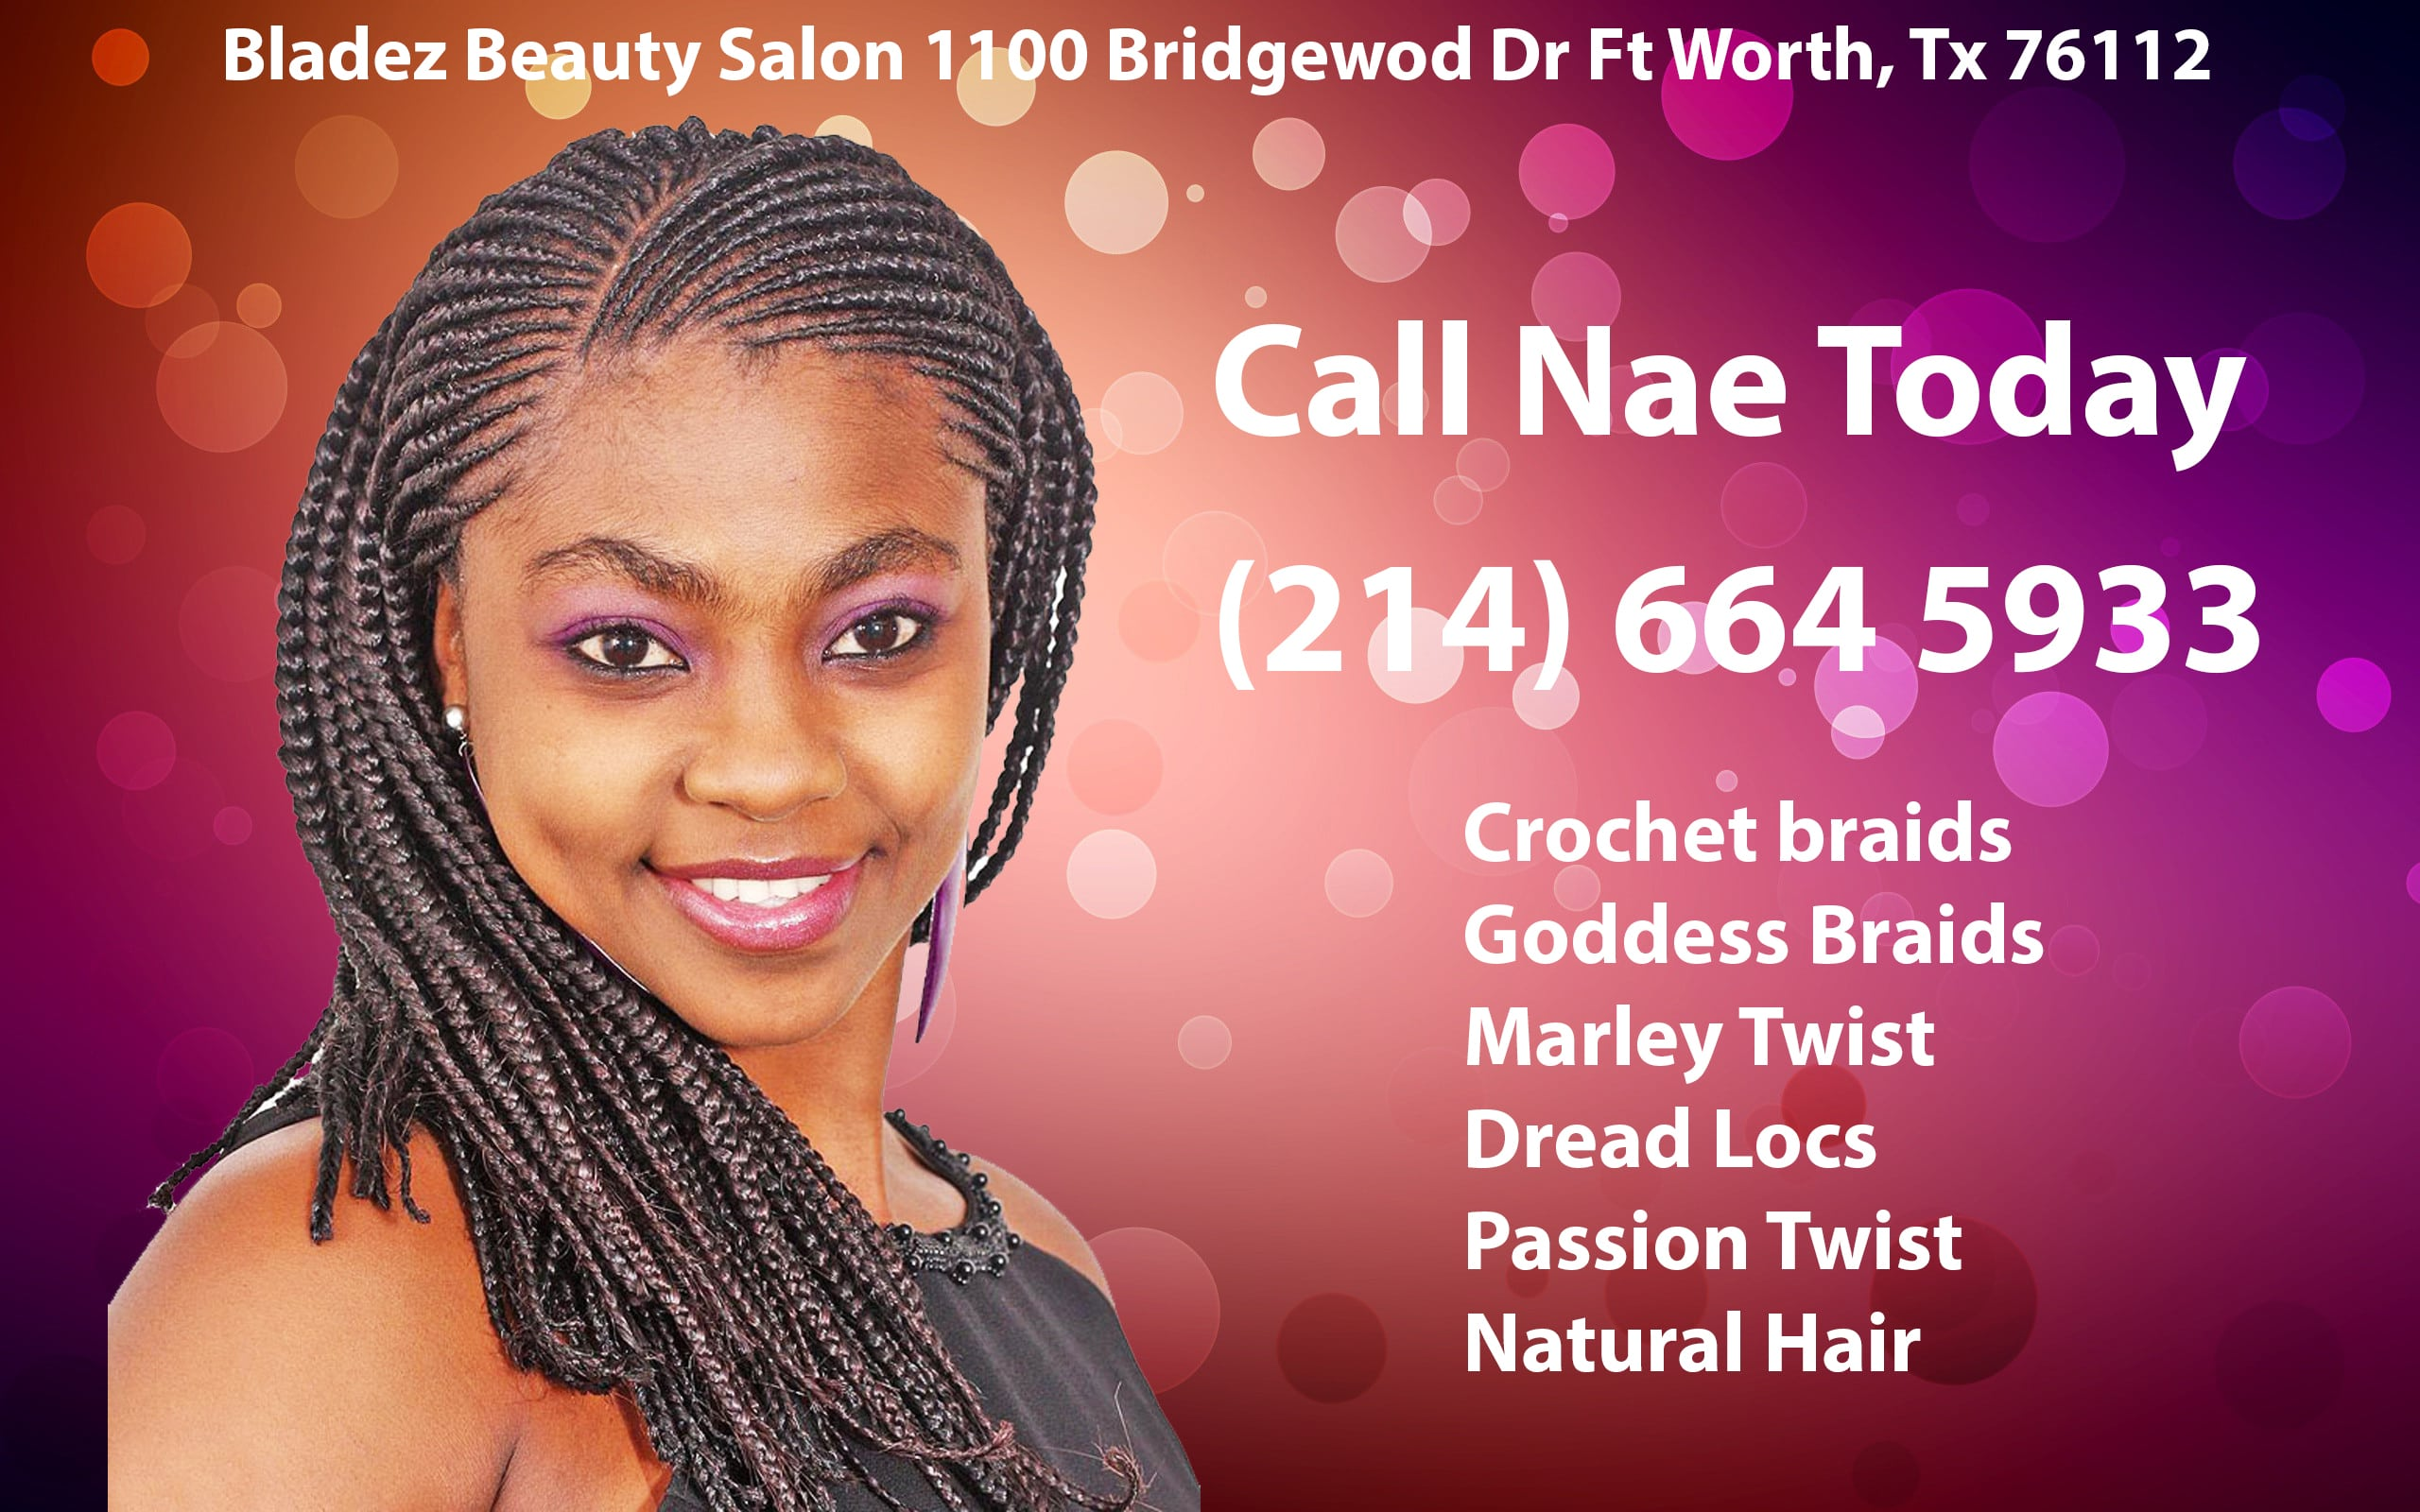 If your looking for a natural hair stylist in the fort Worth area give me a call for a free consultation